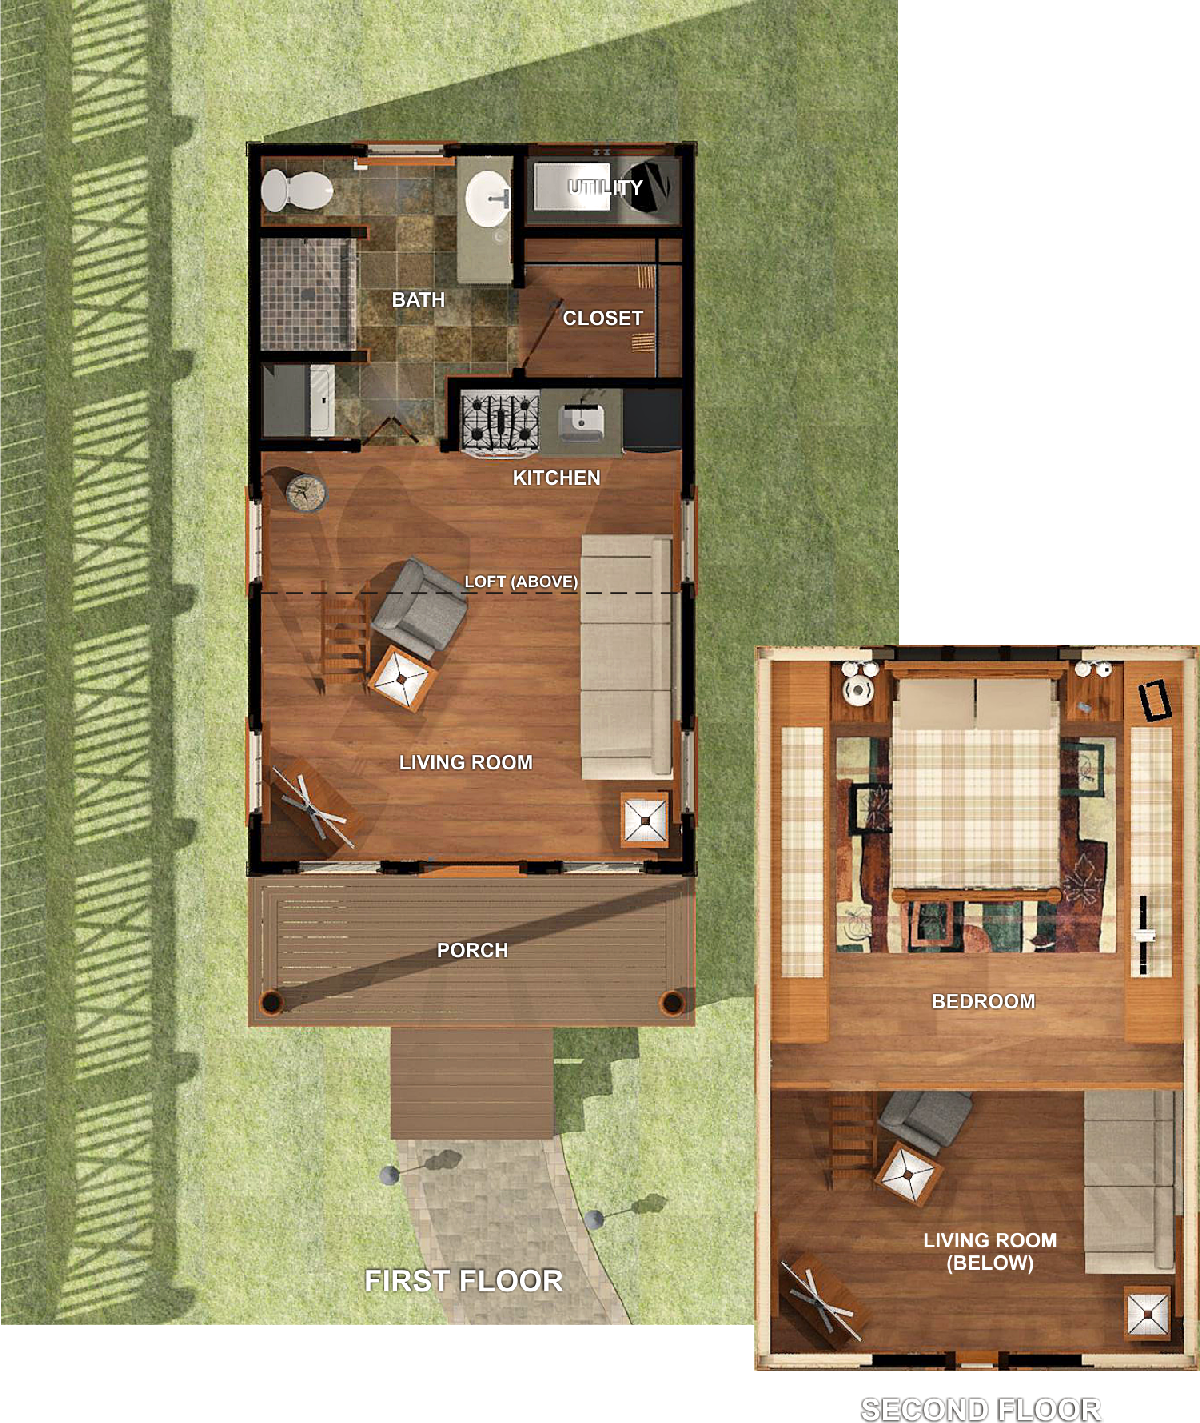 tiny homes small homes little house texas tiny house plans small home - Interior Home Plans